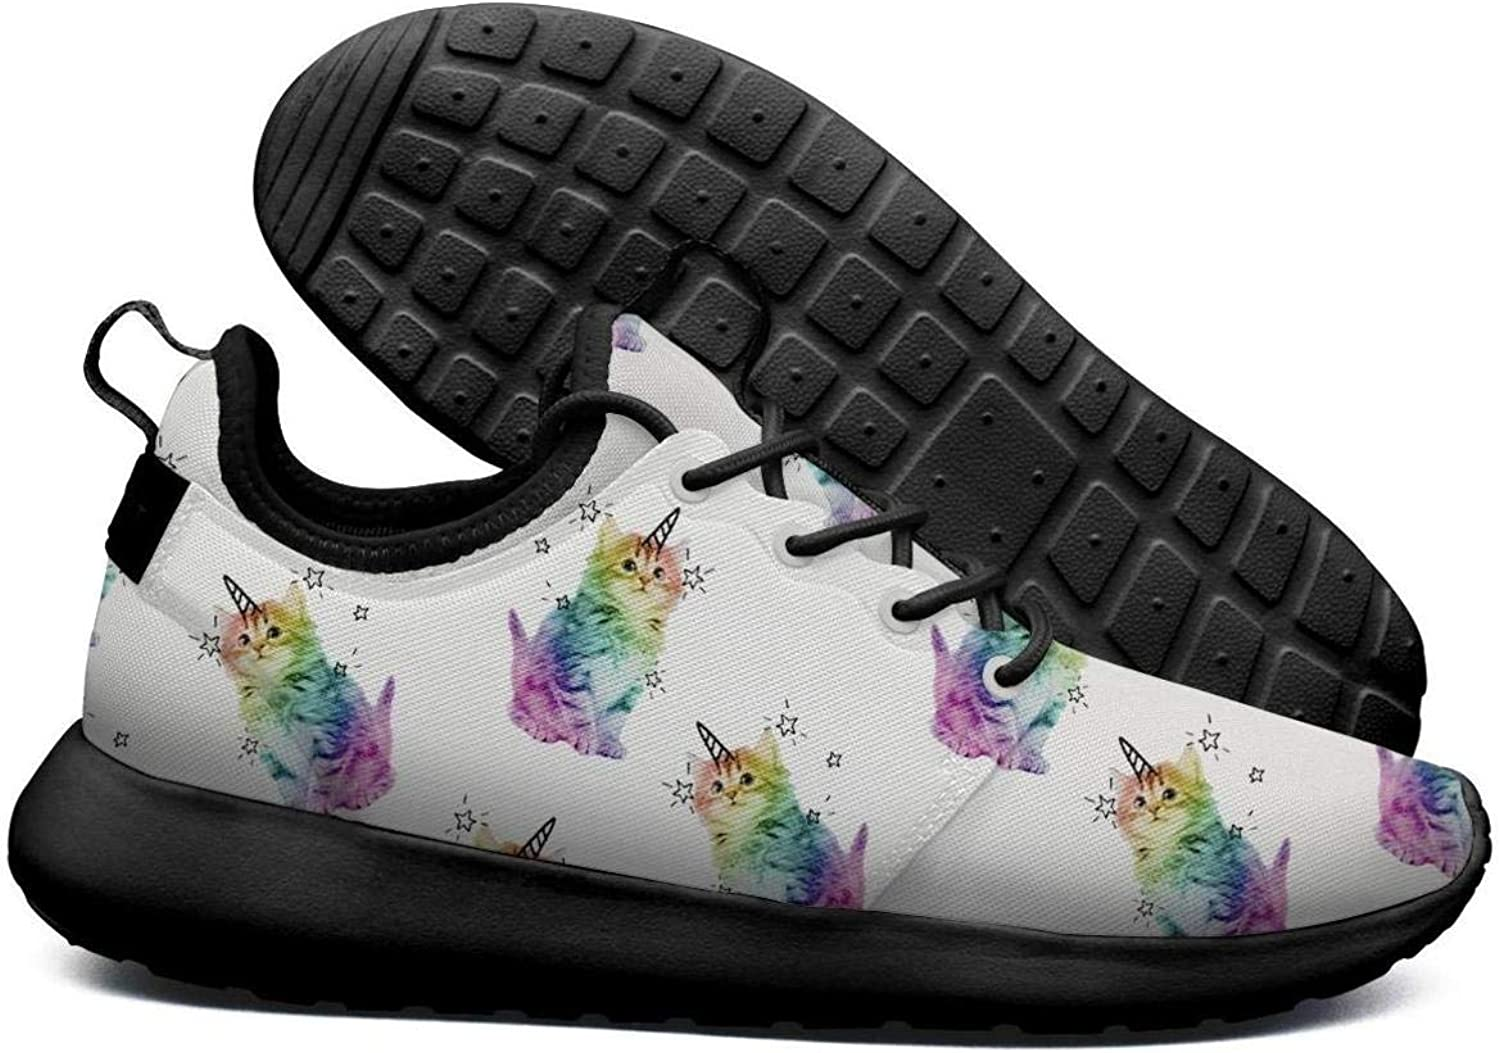 Heart Unicorn Black Casual shoes for Women News Wear-Resistant Air Running shoes